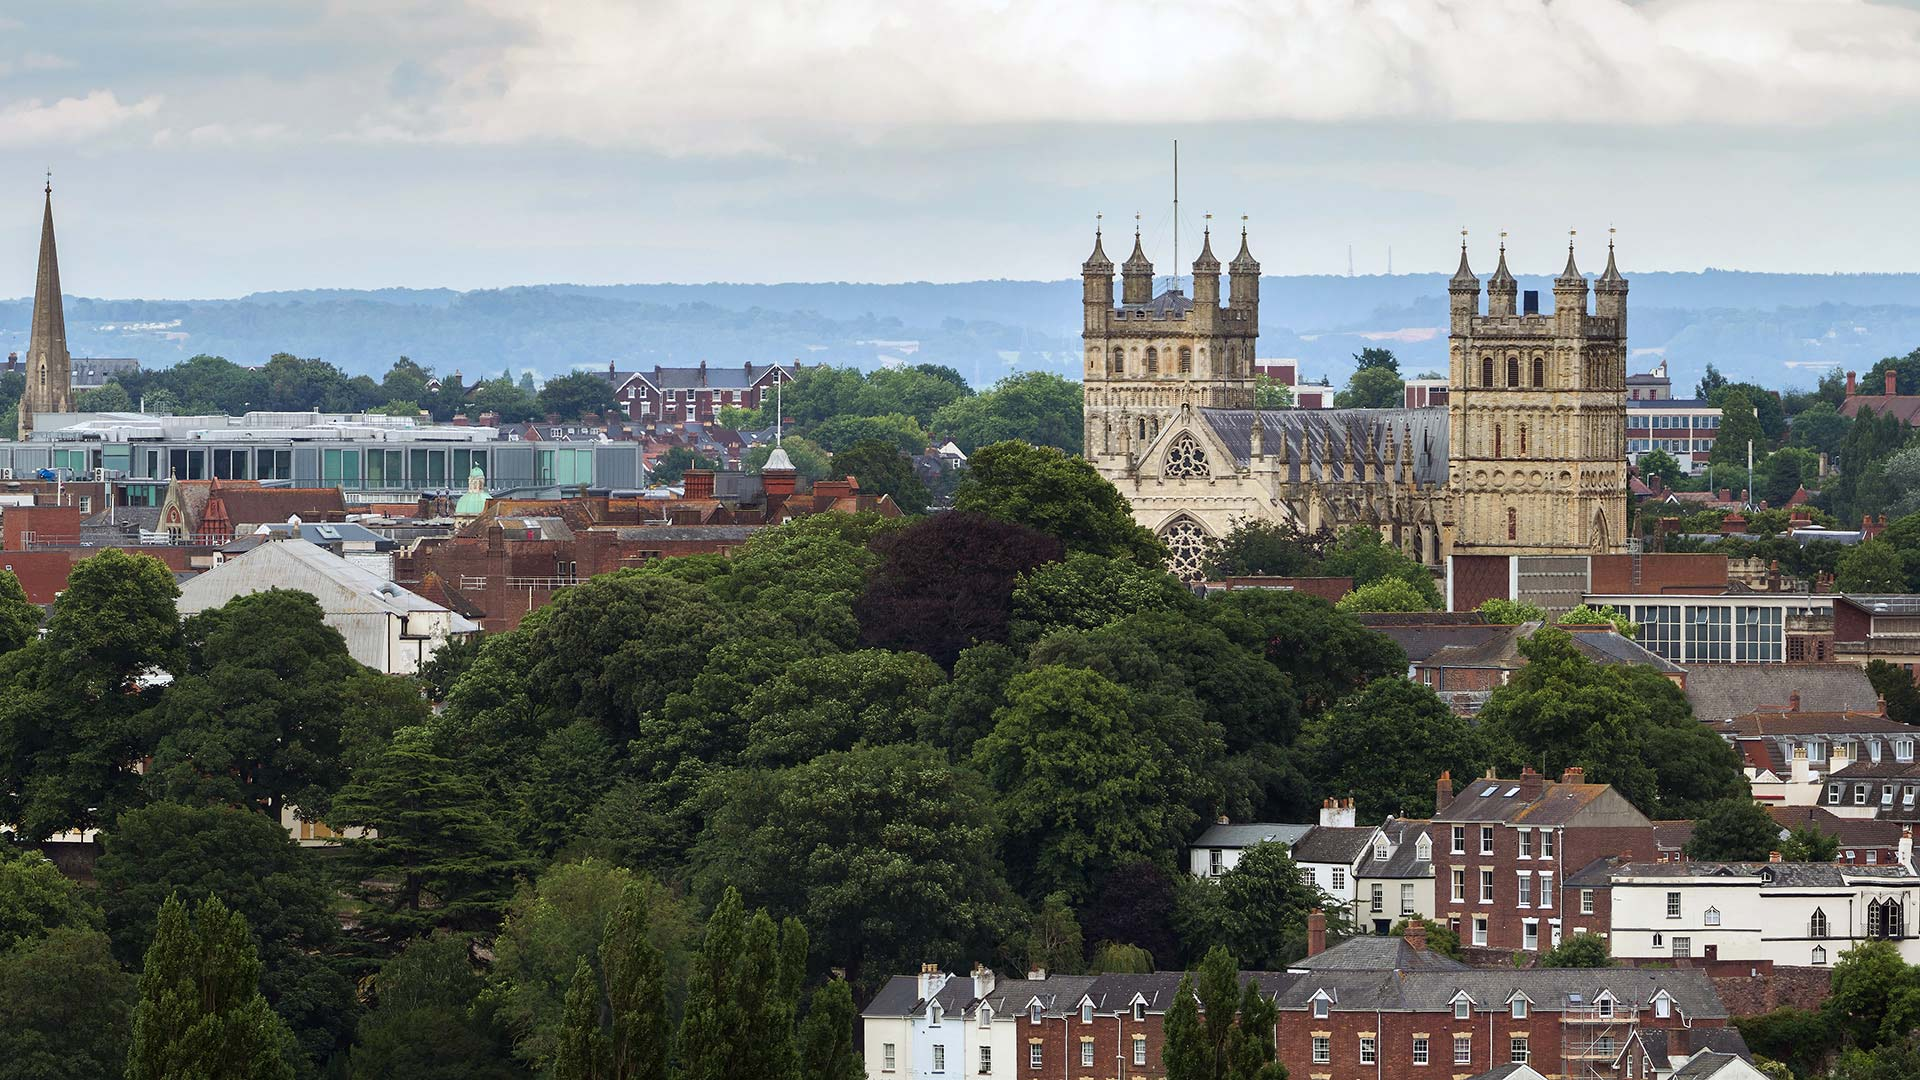 Panorama to illustrate dating in exeter